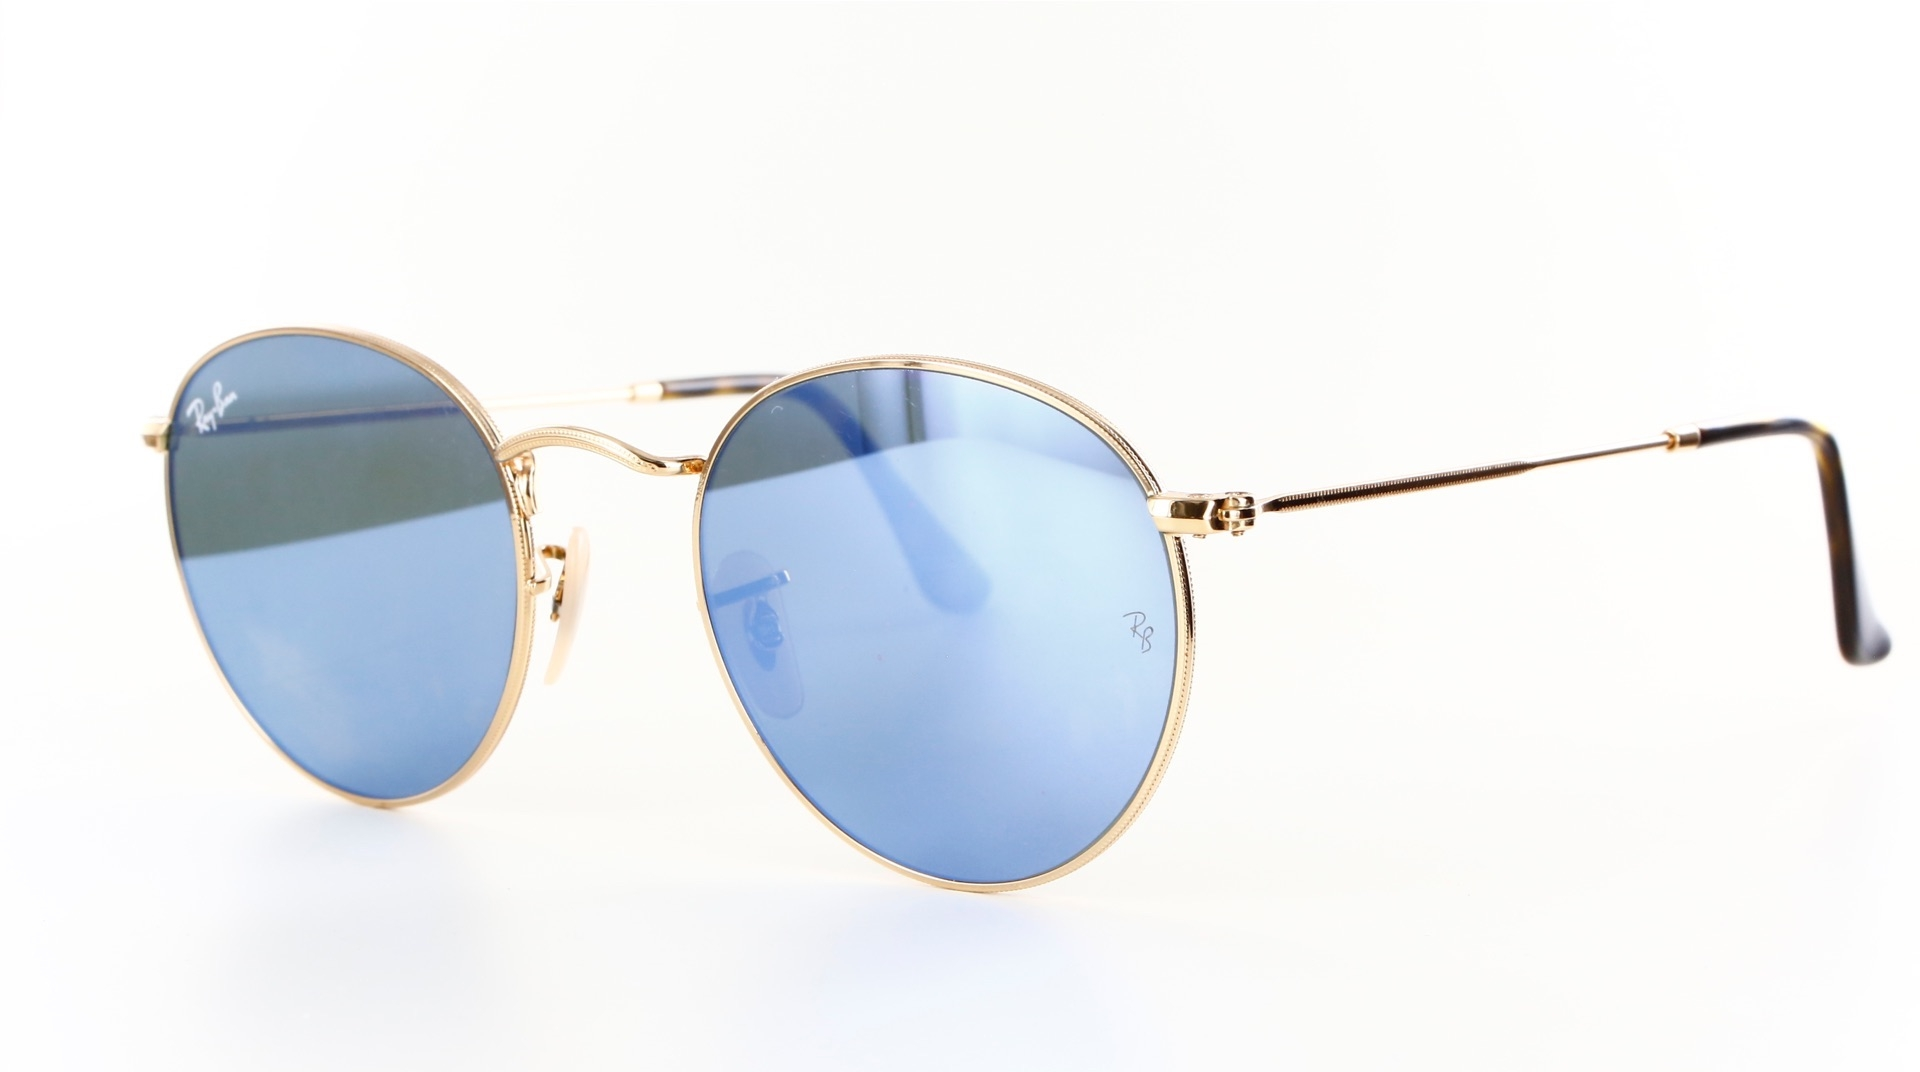 Ray-Ban - ref: 76888